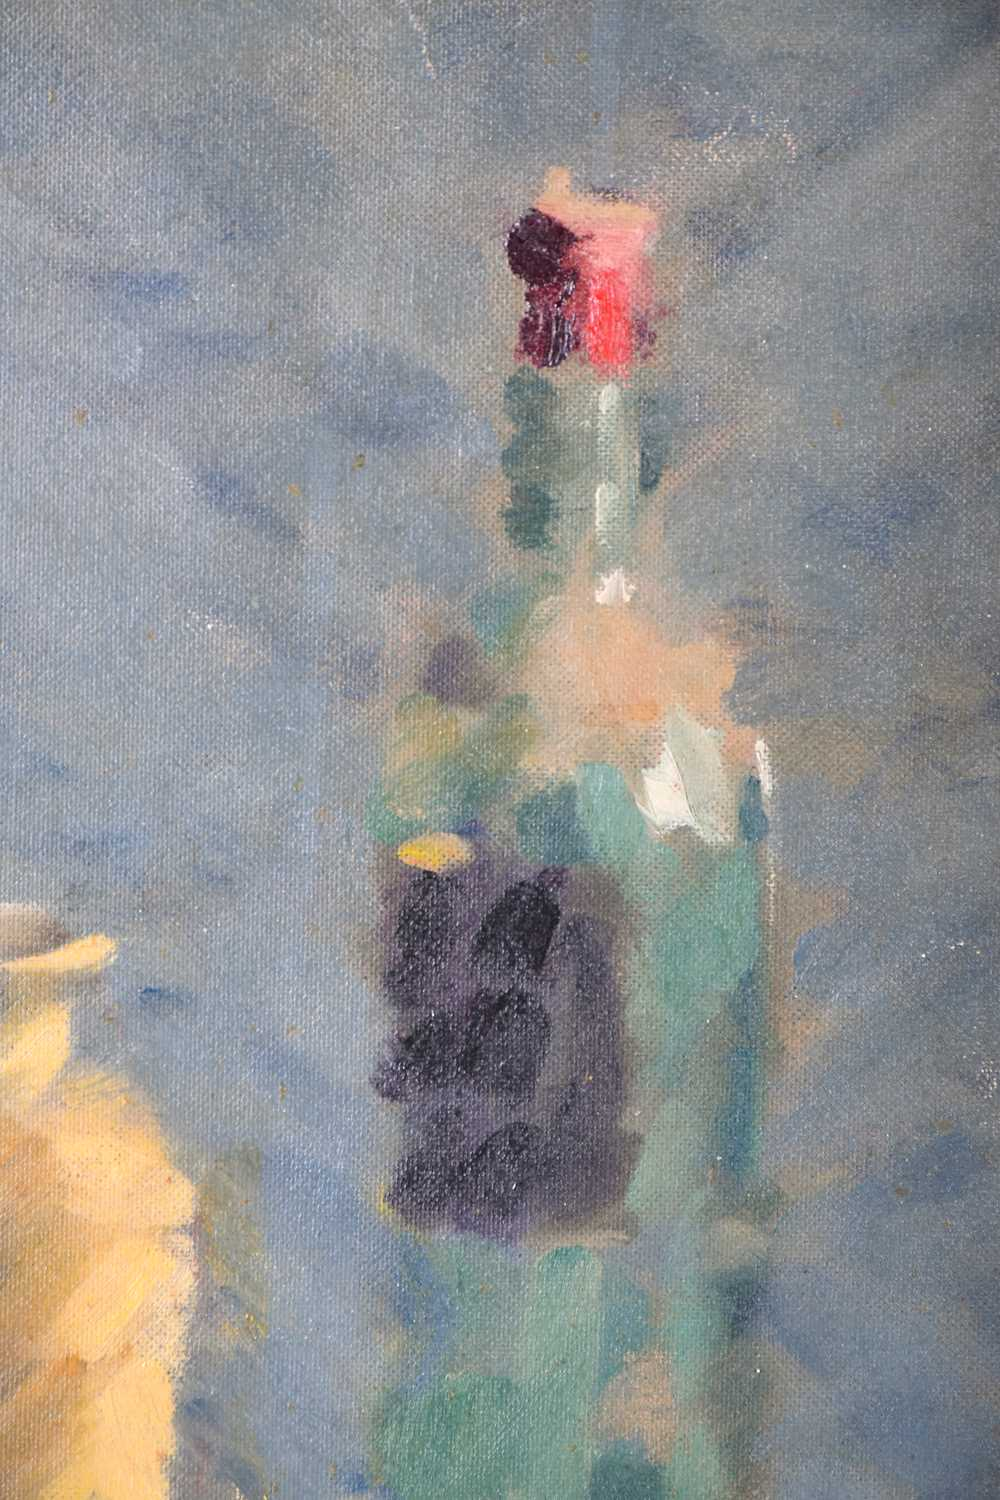 Lot 14 - A mid 20th century still life painting of a wine bottle and vase, oil on board, signed Wilson, in